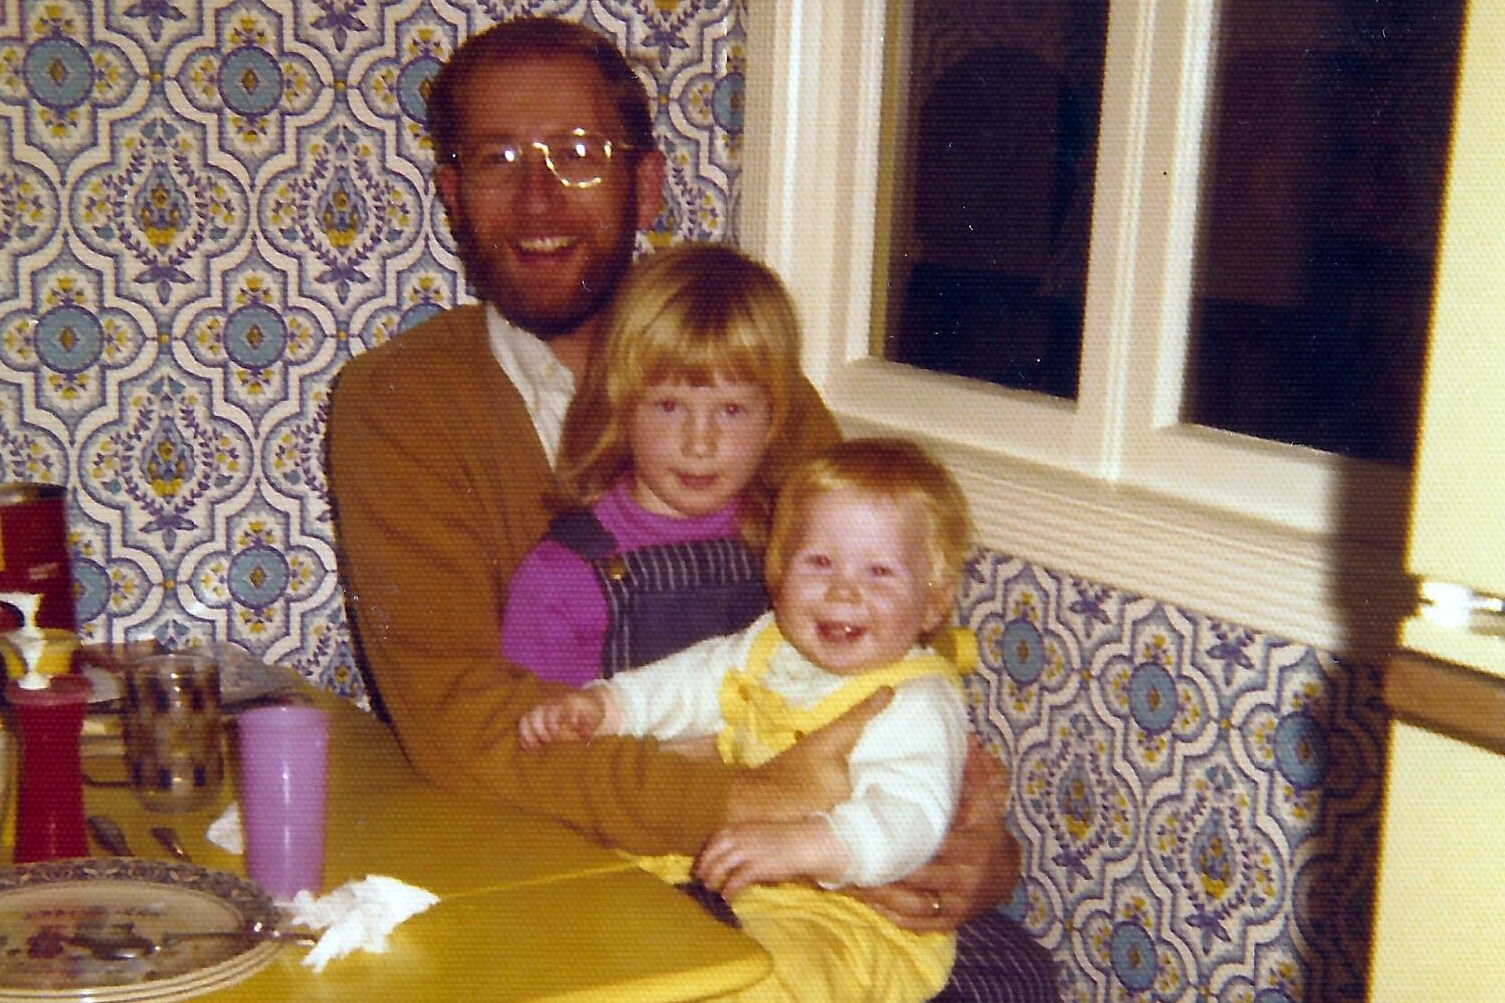 My dad, sister and me